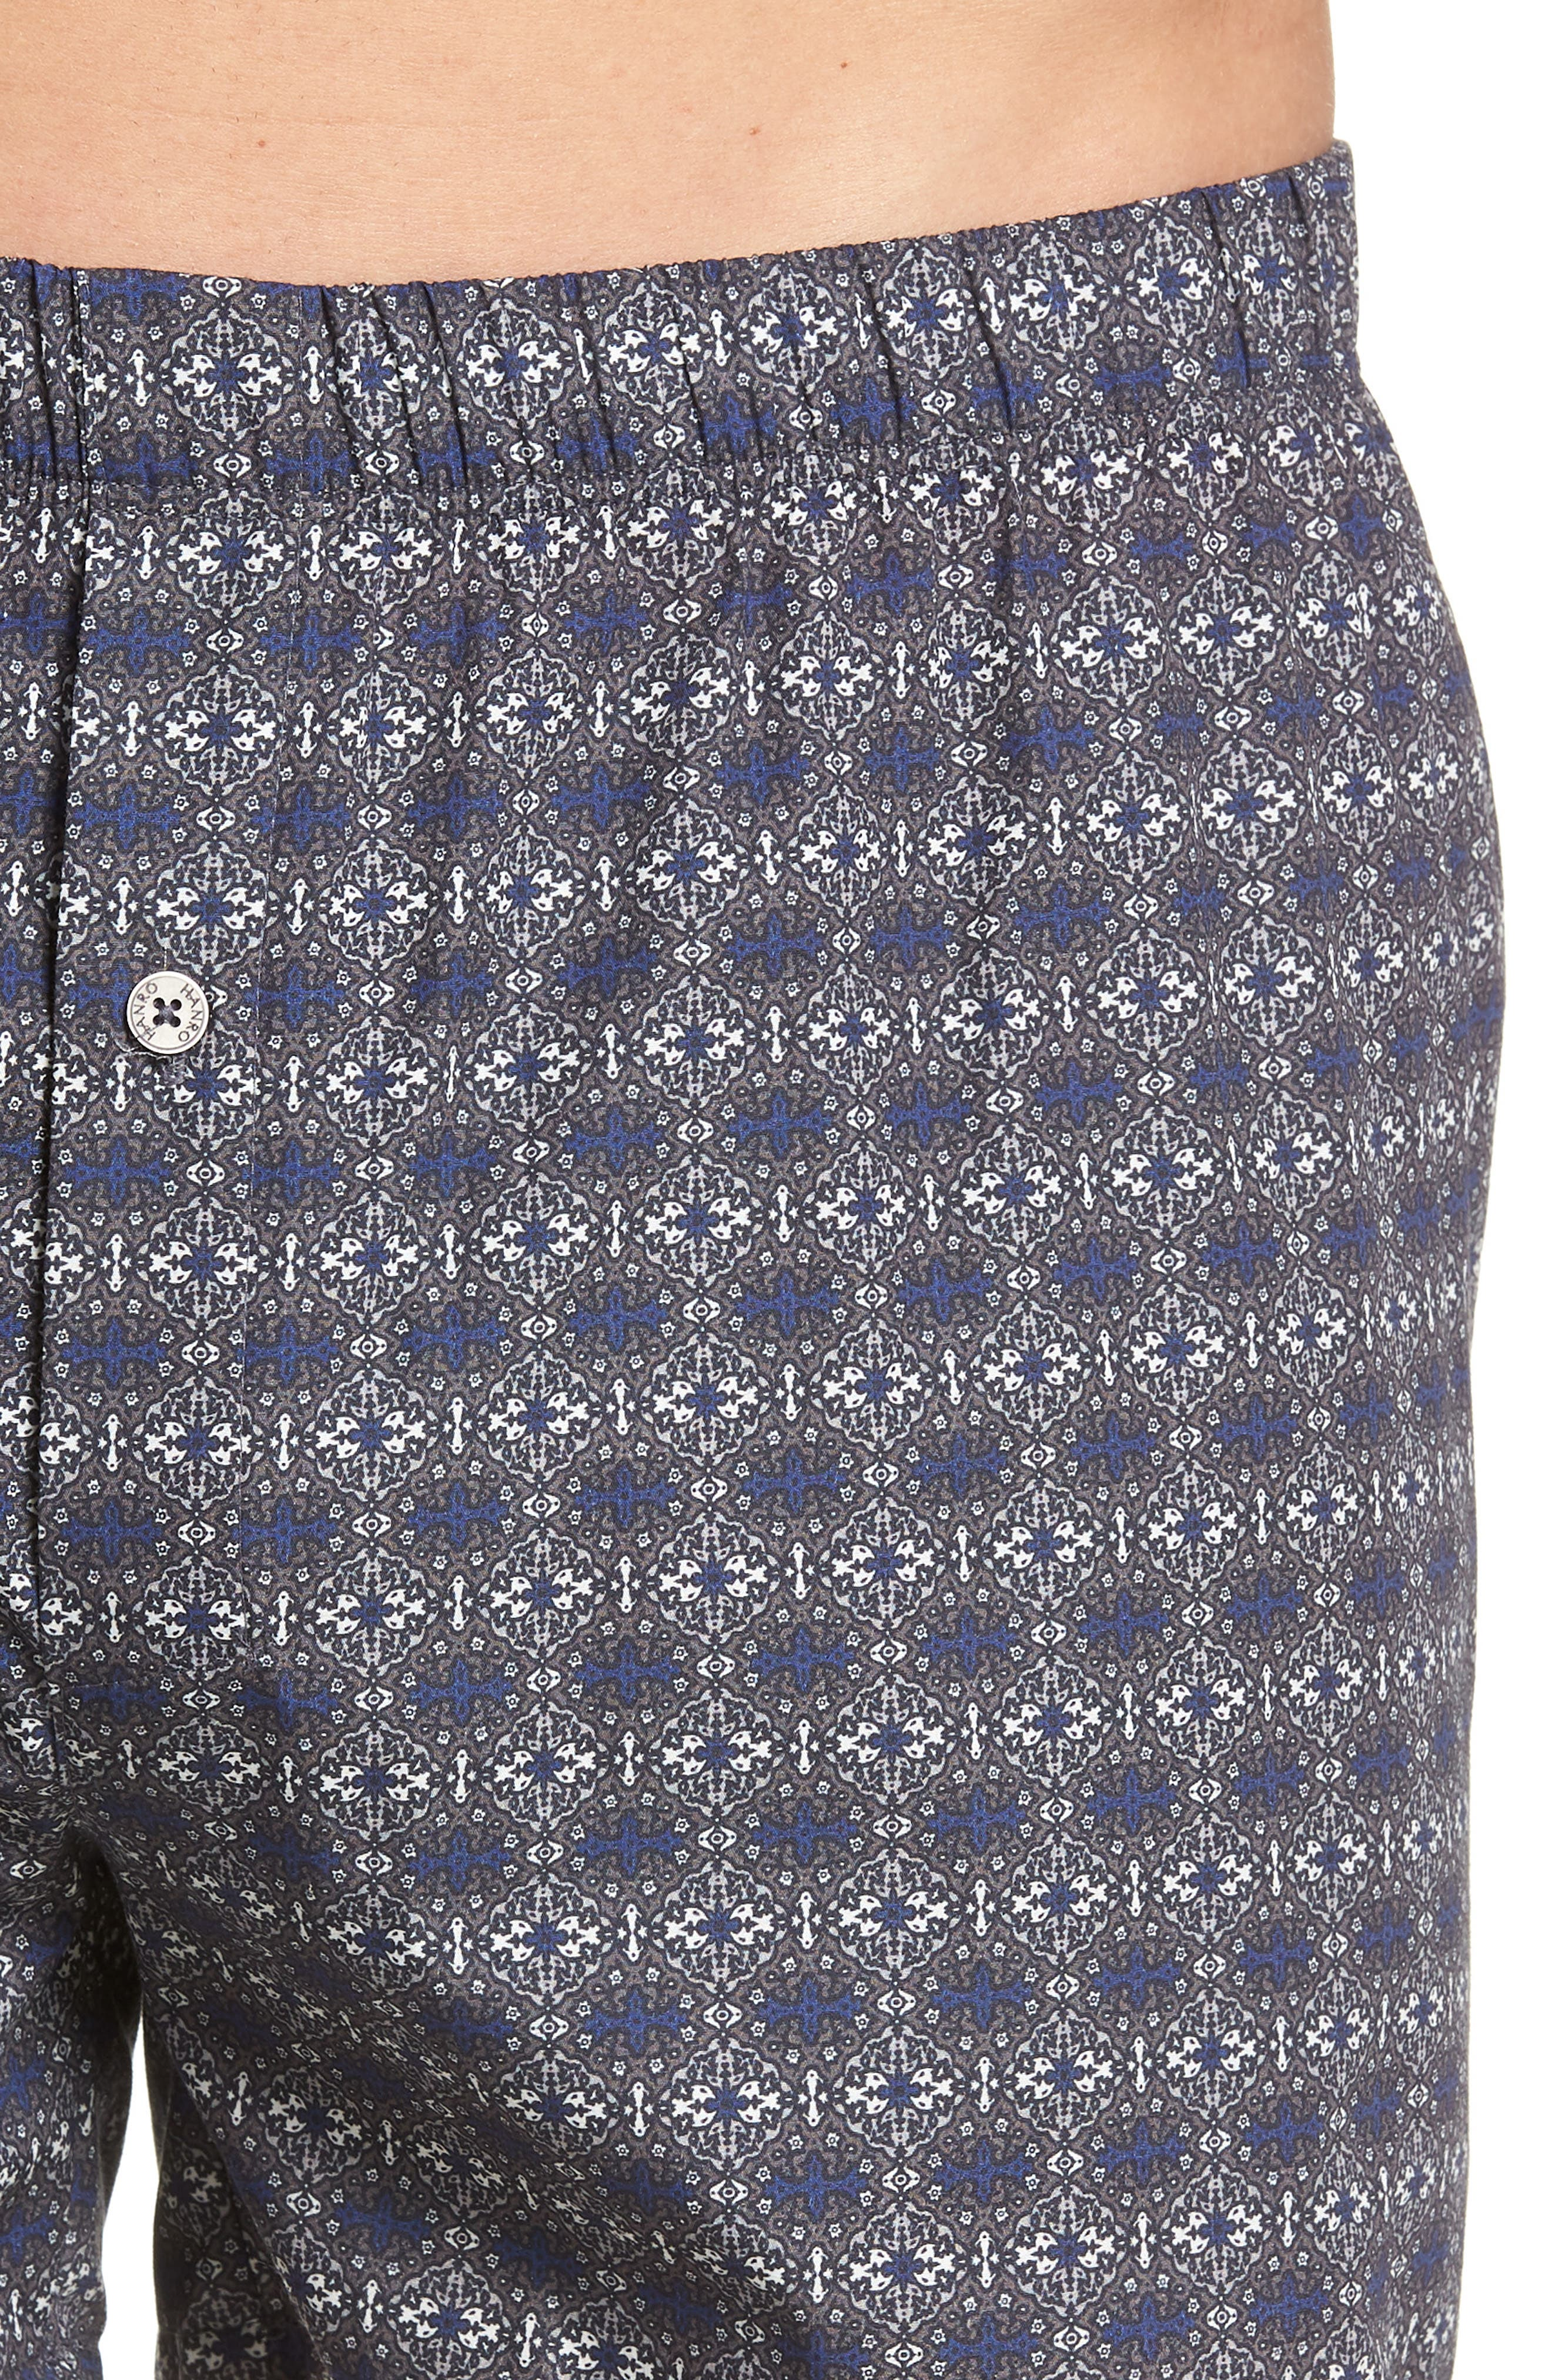 2-Pack Fancy Woven Boxers,                             Alternate thumbnail 5, color,                             MINIMAL ORNAMENT/ ROYAL BLUE